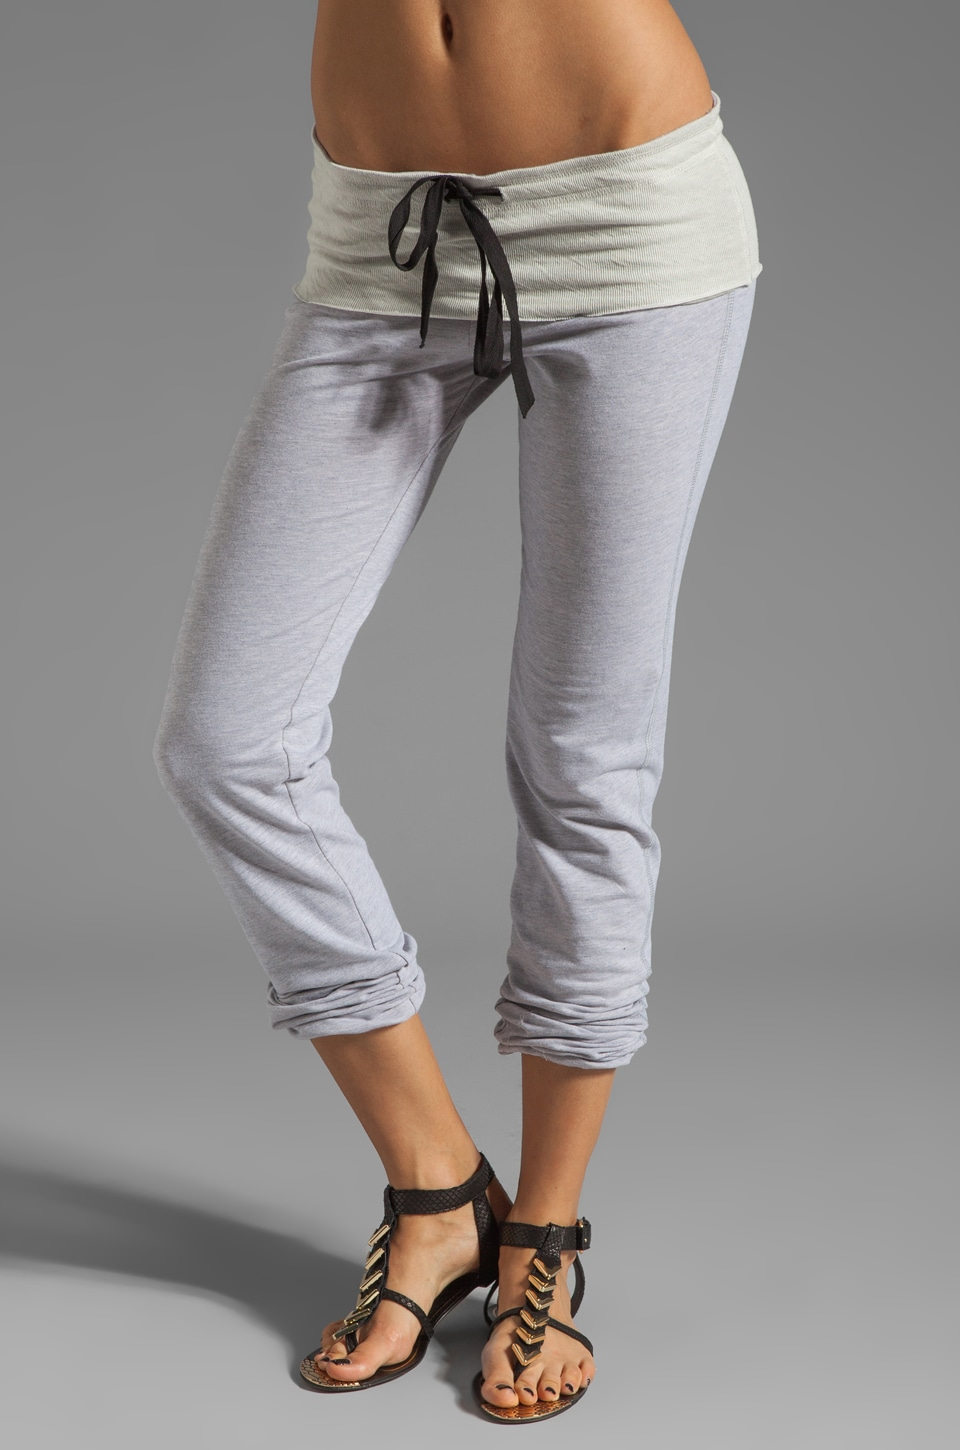 Tylie French Terry Elastic Bottom Pant in Heather